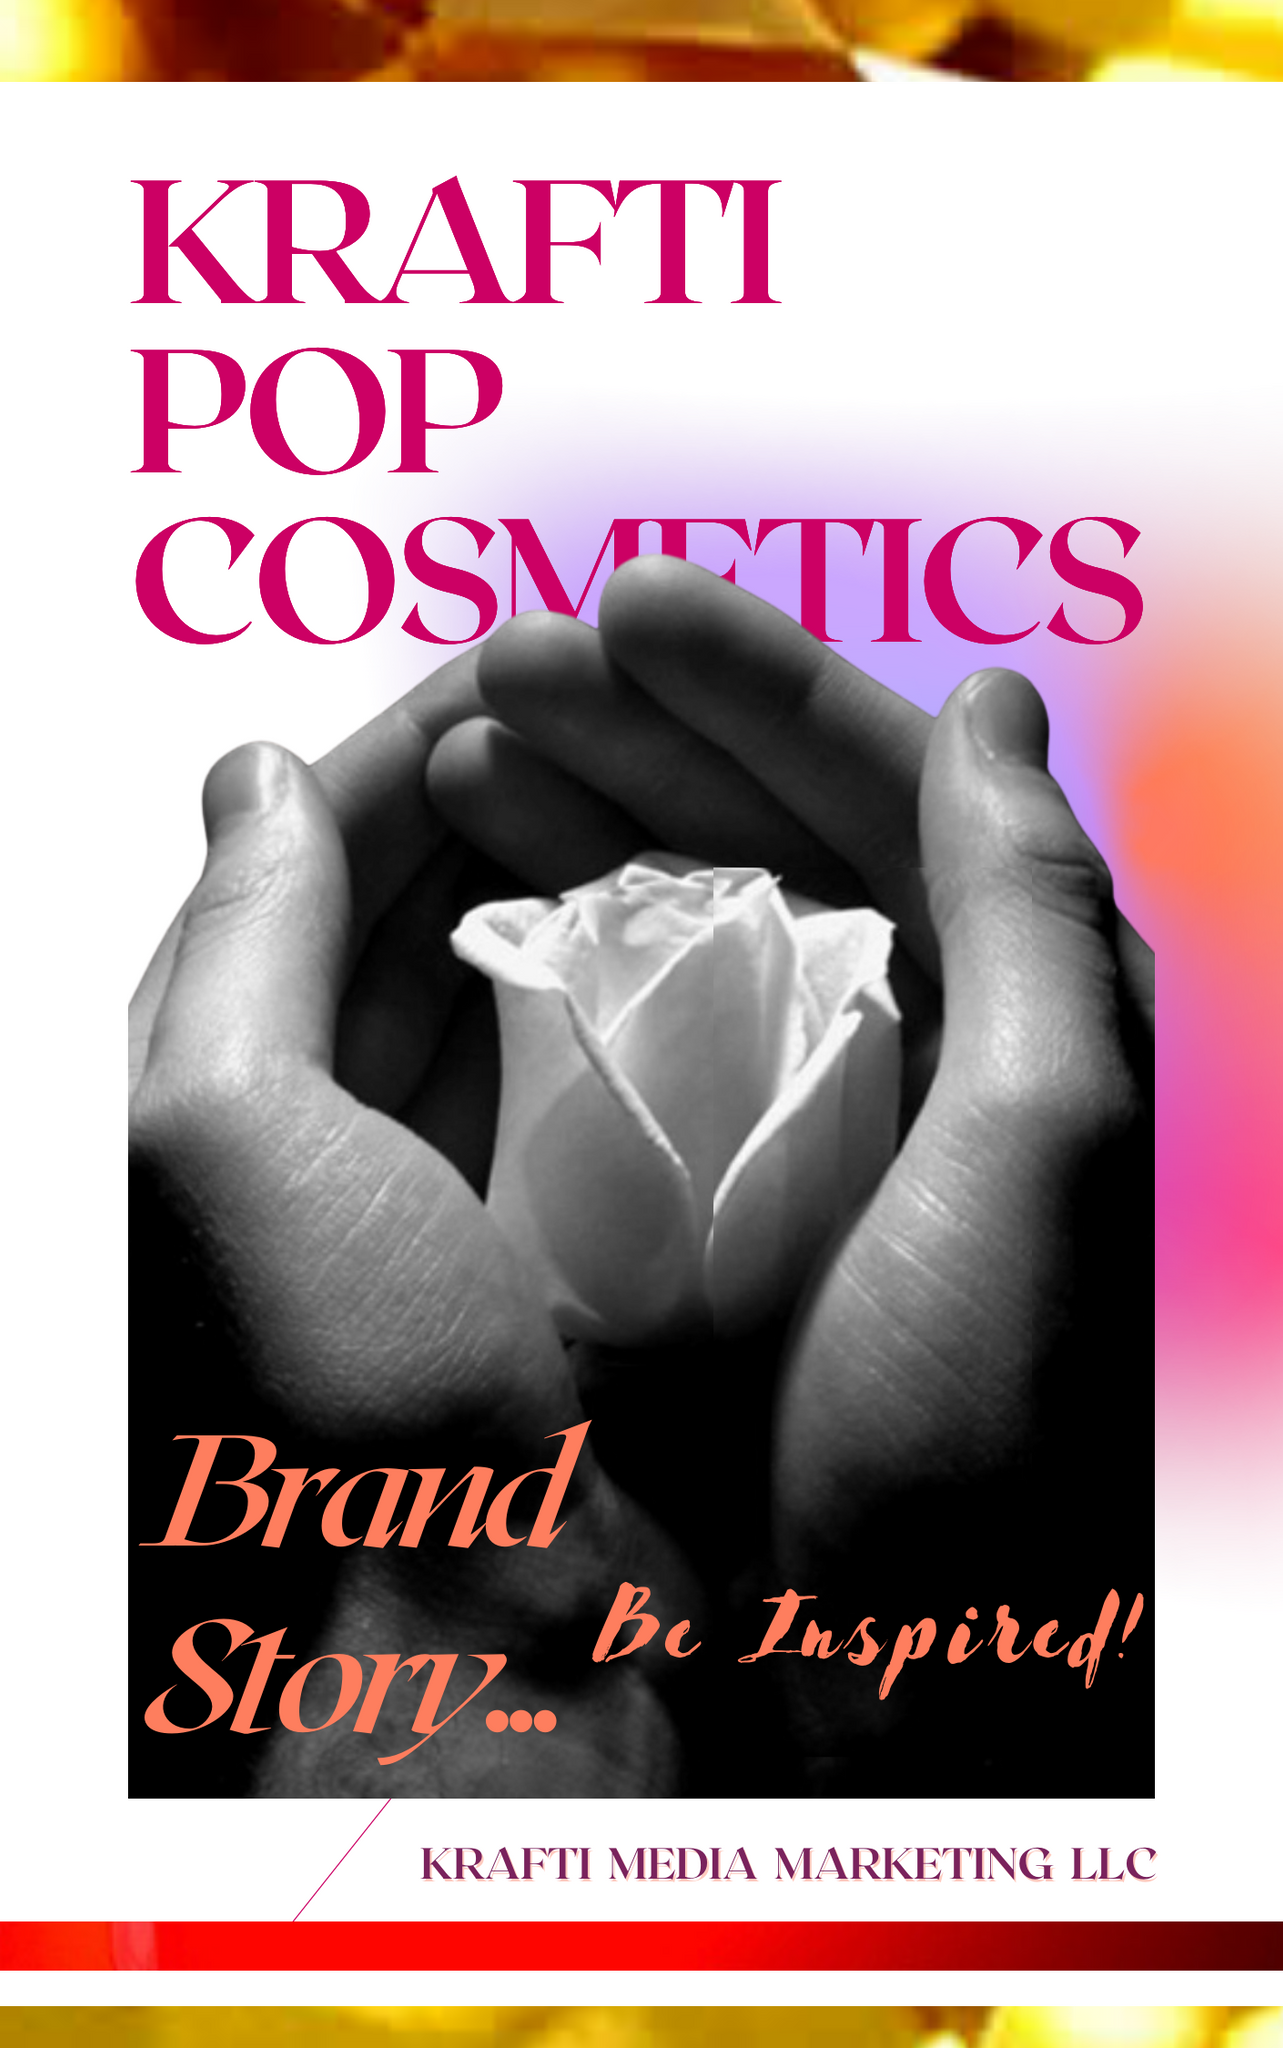 Krafti Pop Cosmetics: The Idea Behind It. Be Inspired!